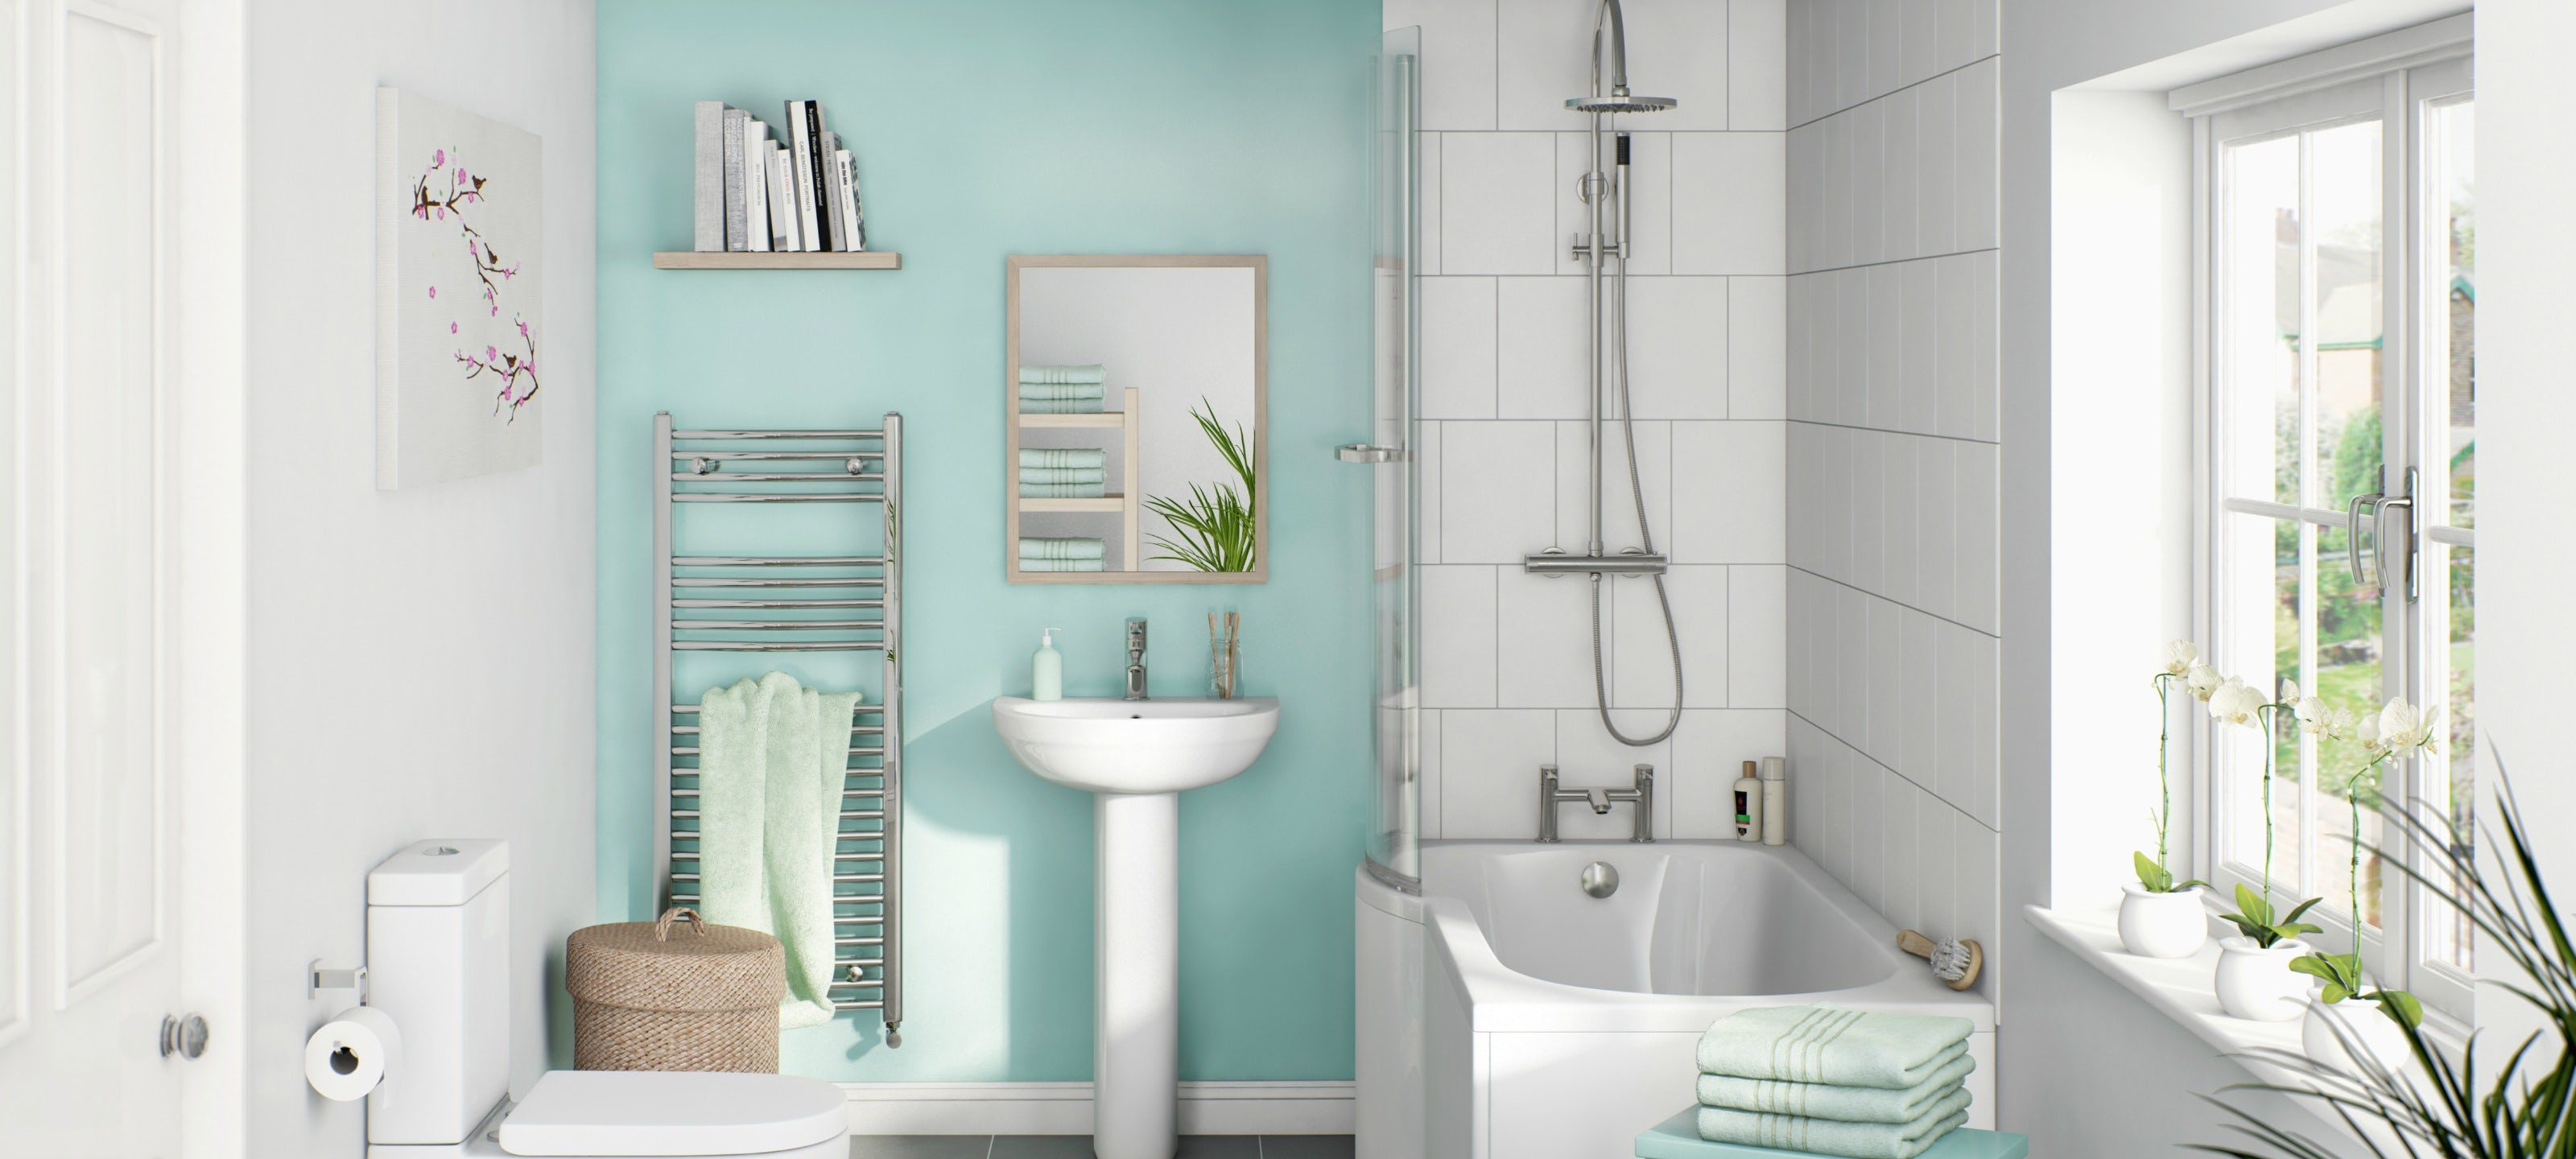 Create a big splash in the bathroom on a budget